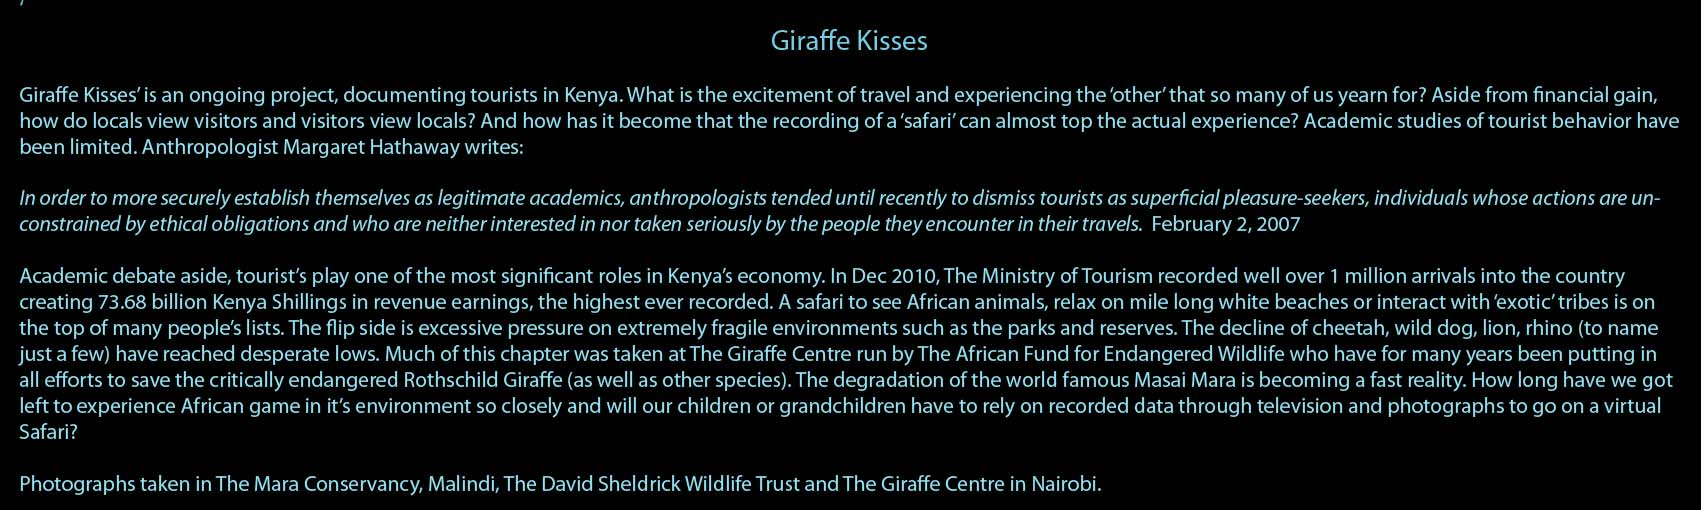 giraffe_kisses_write_up